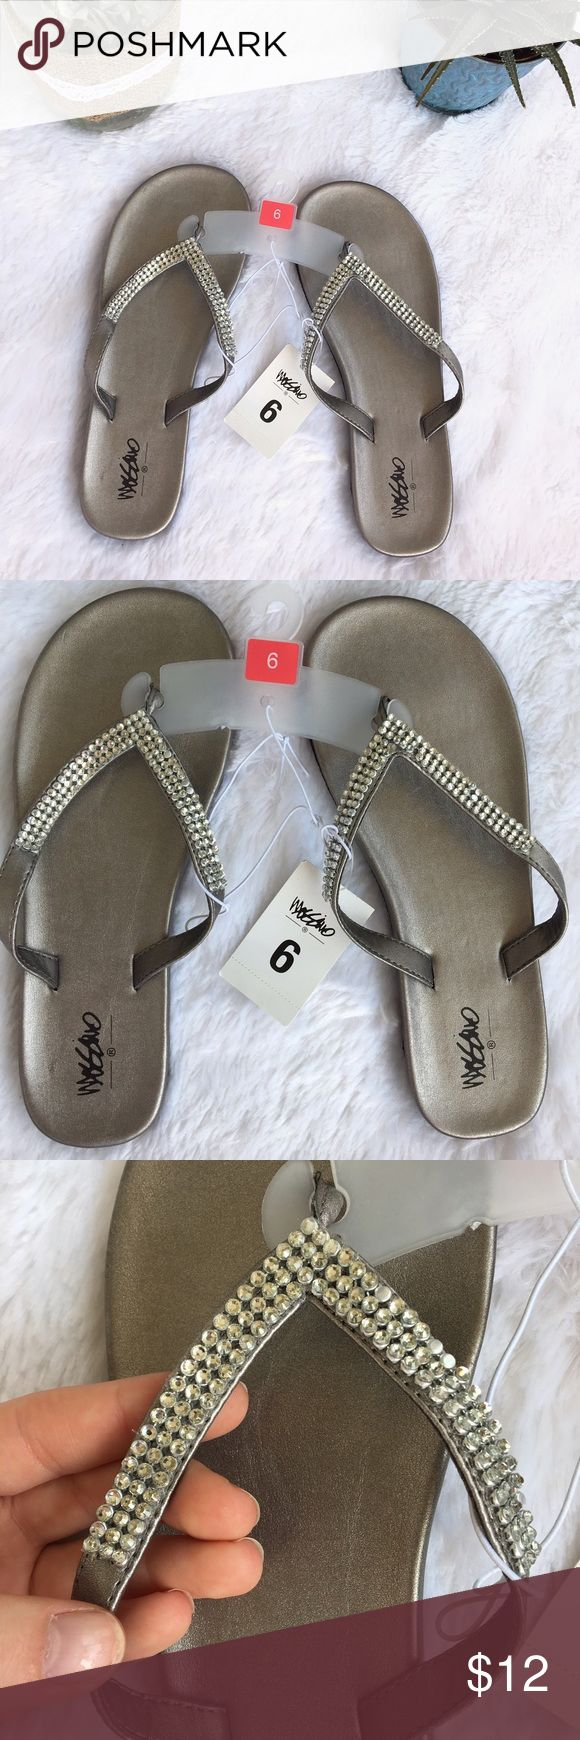 NEW Silver Flip Flops, Jewel Sandals, Dress Shoes BRAND NEW silver/gray dressy flip flops! Jewels on the straps. No defects, never been worn. Lightweight and great for summer! Shoes Sandals